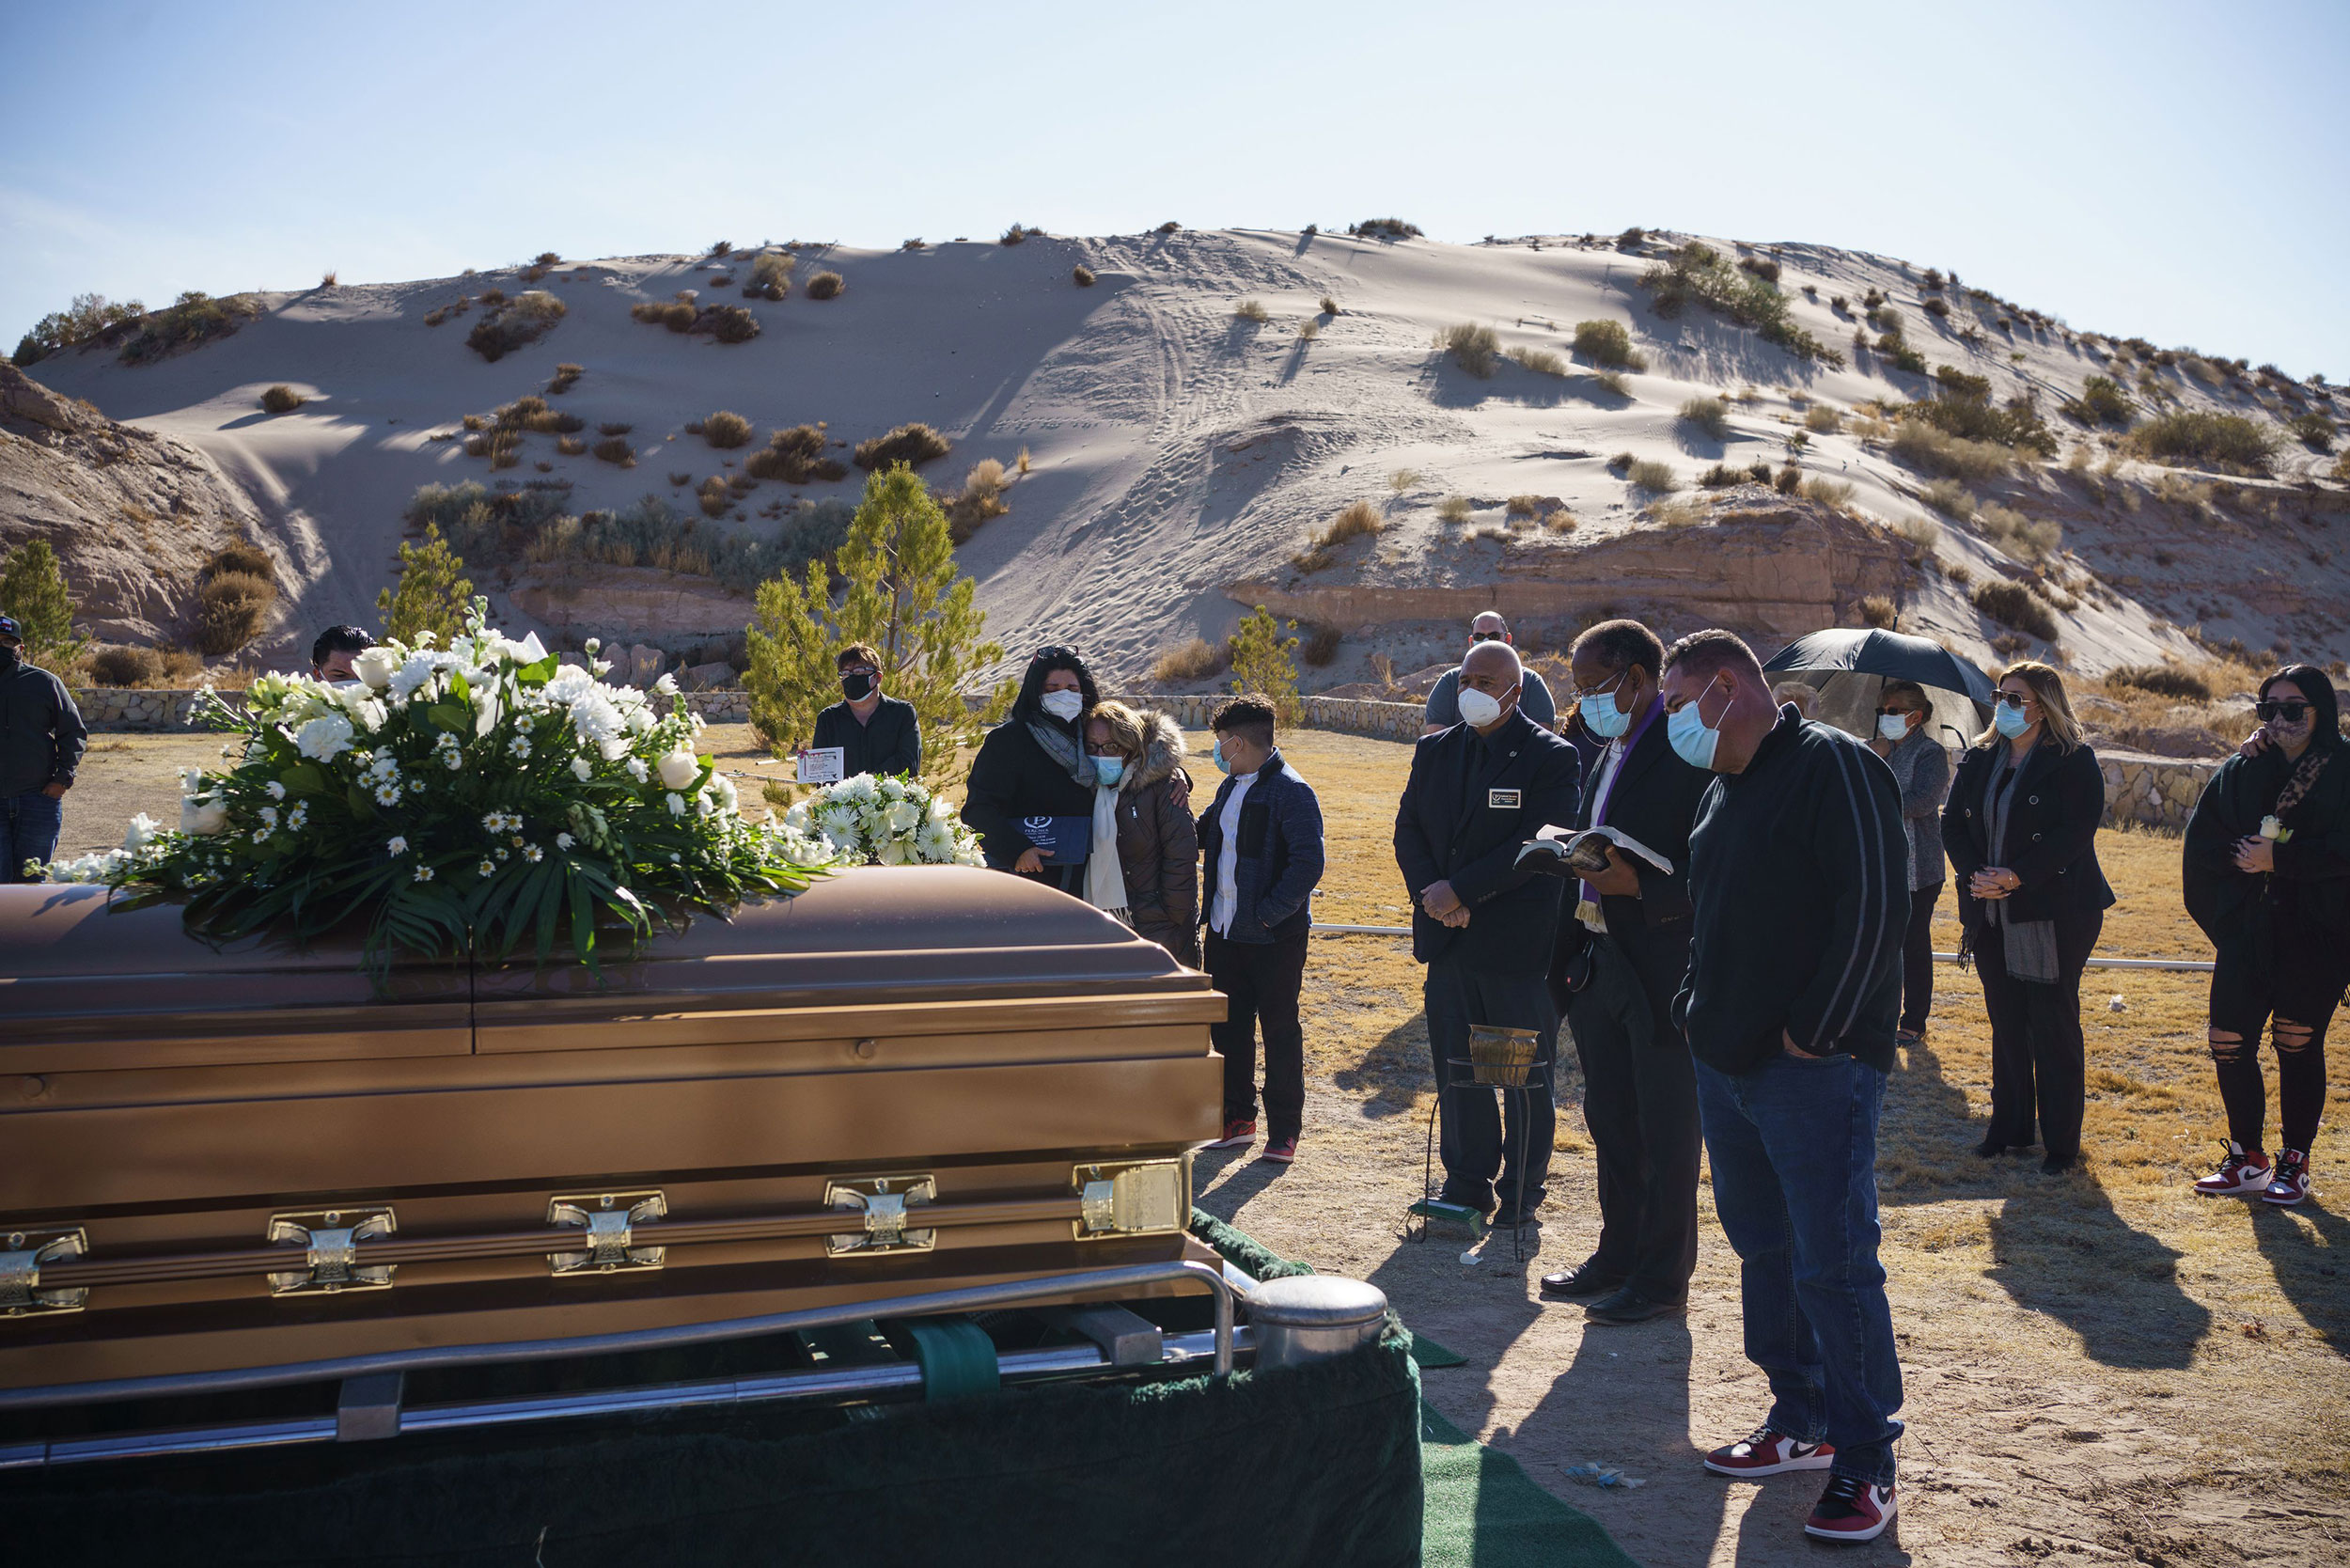 Family and friends attend the funeral of Humberto Rosales on December 3, in Santa Teresa, New Mexico. Rosales died from Covid-19 complications.